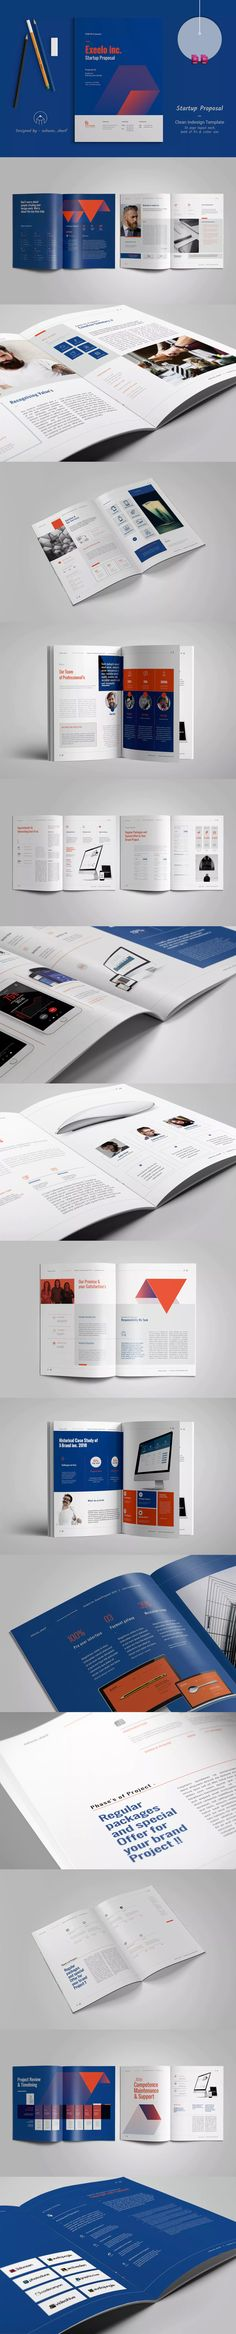 Modern Project Proposal \ Invoice Template InDesign INDD - 12 - project proposal letter